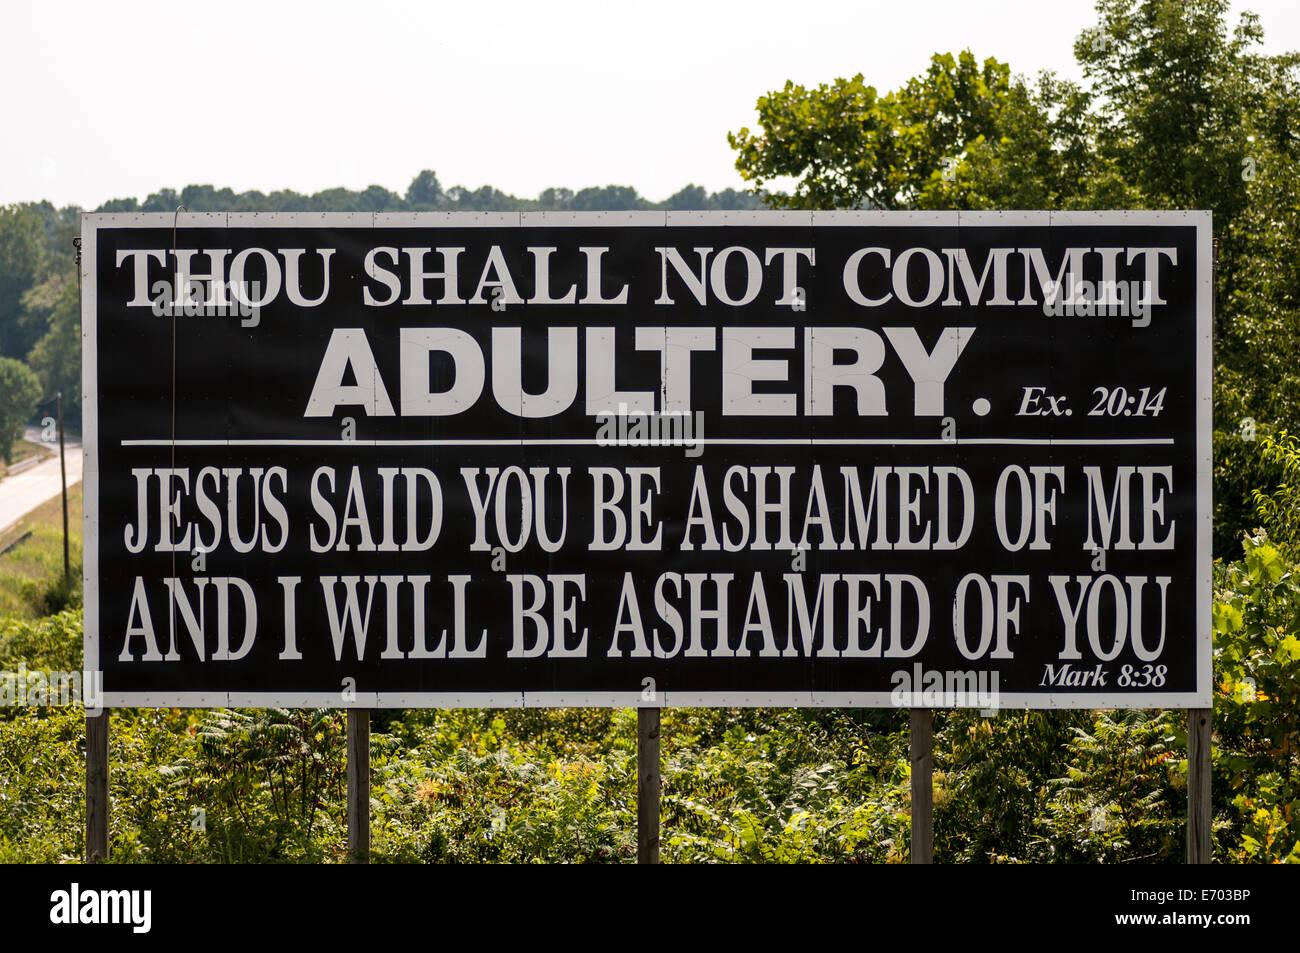 Thou Shall Not Commit Adultery road sign in Kentucky - Stock Image